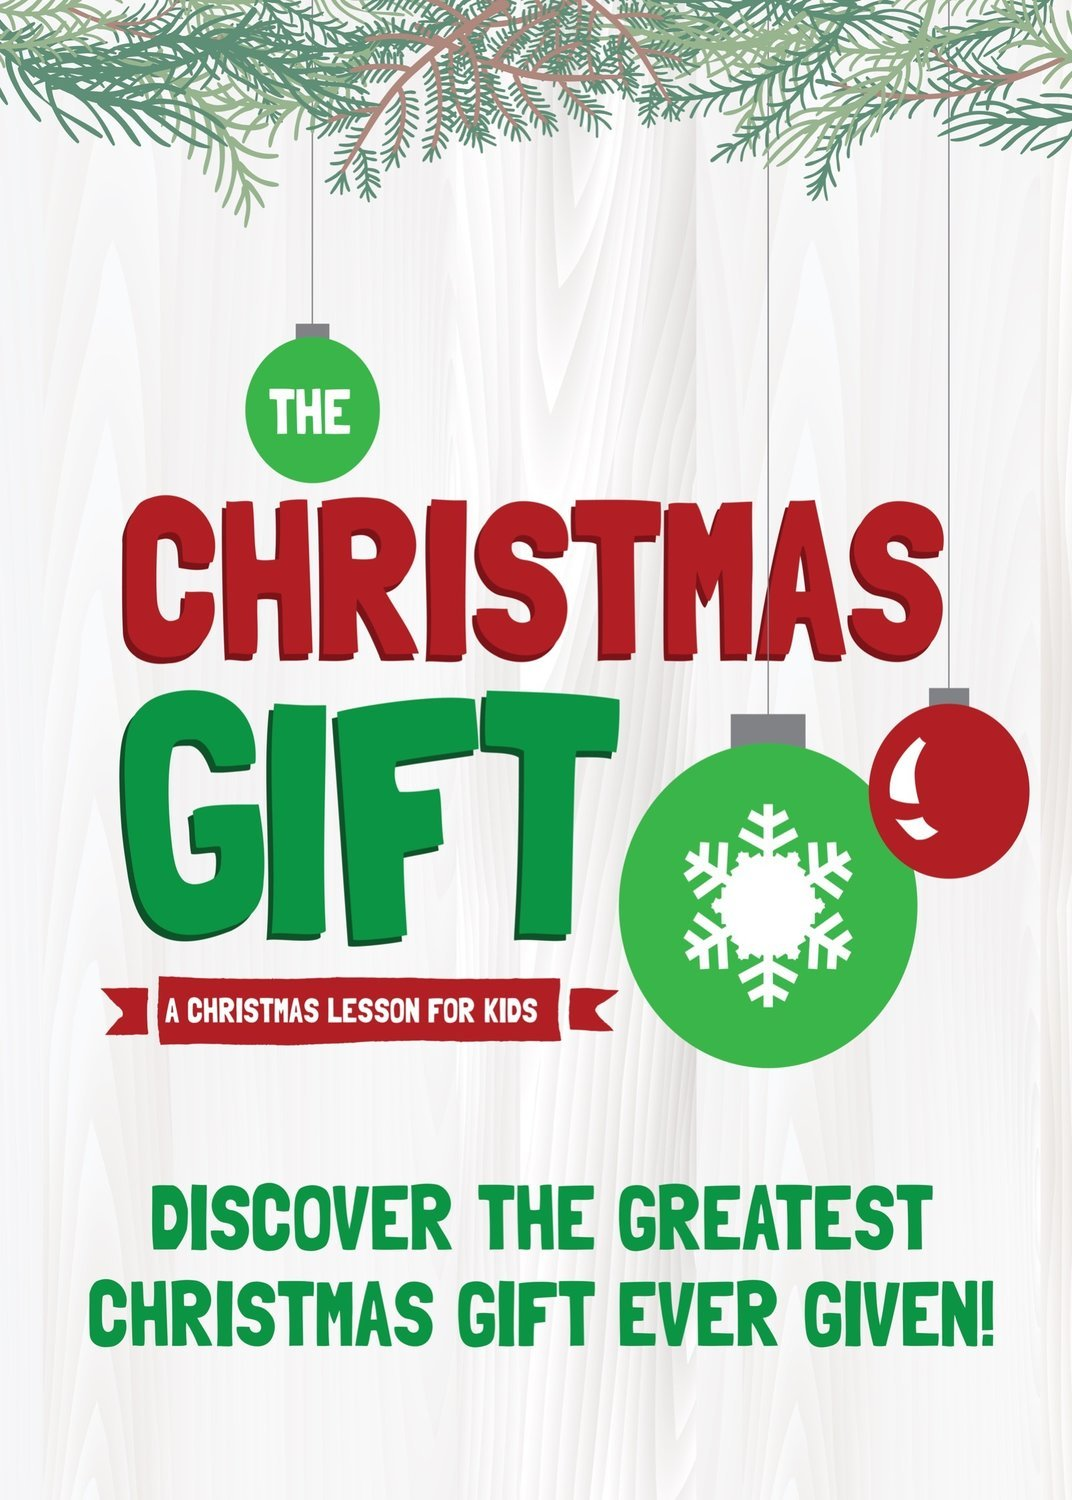 THE CHRISTMAS GIFT (Christmas lesson for kids)